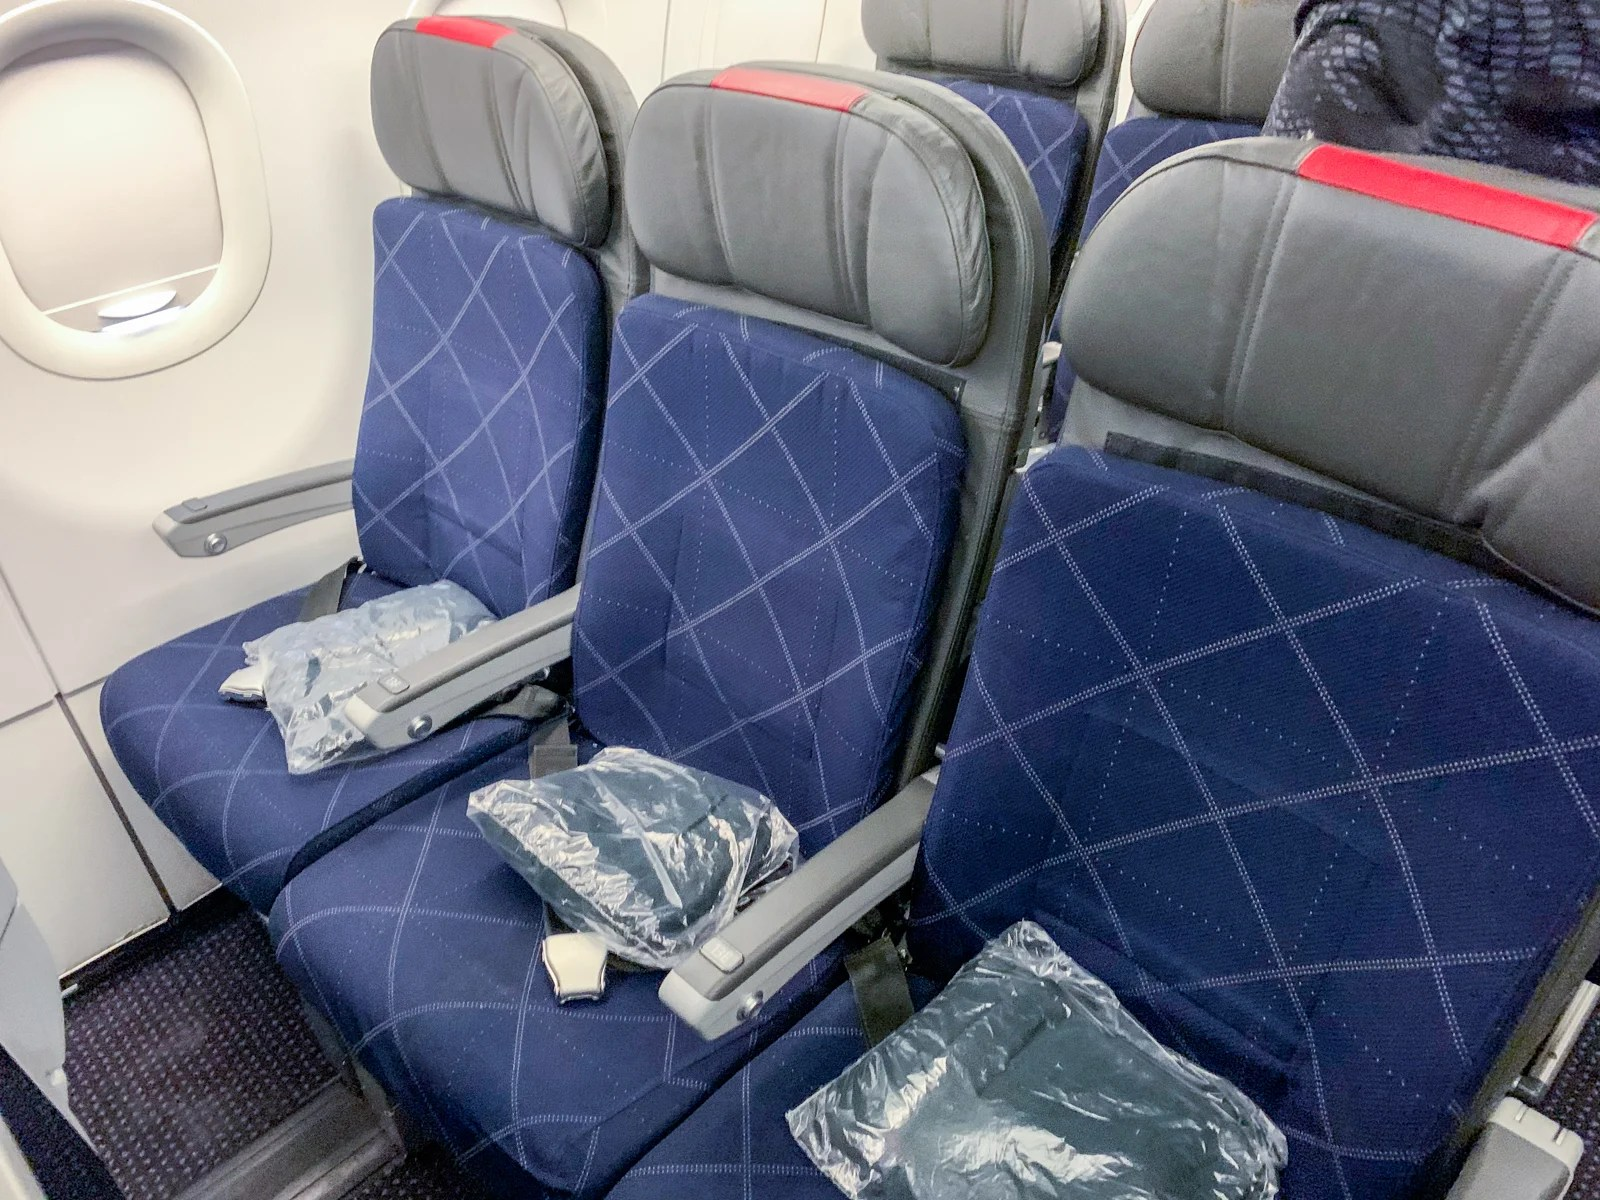 Adequate across America: A review of American Airlines in economy on the A321T from JFK to LAX